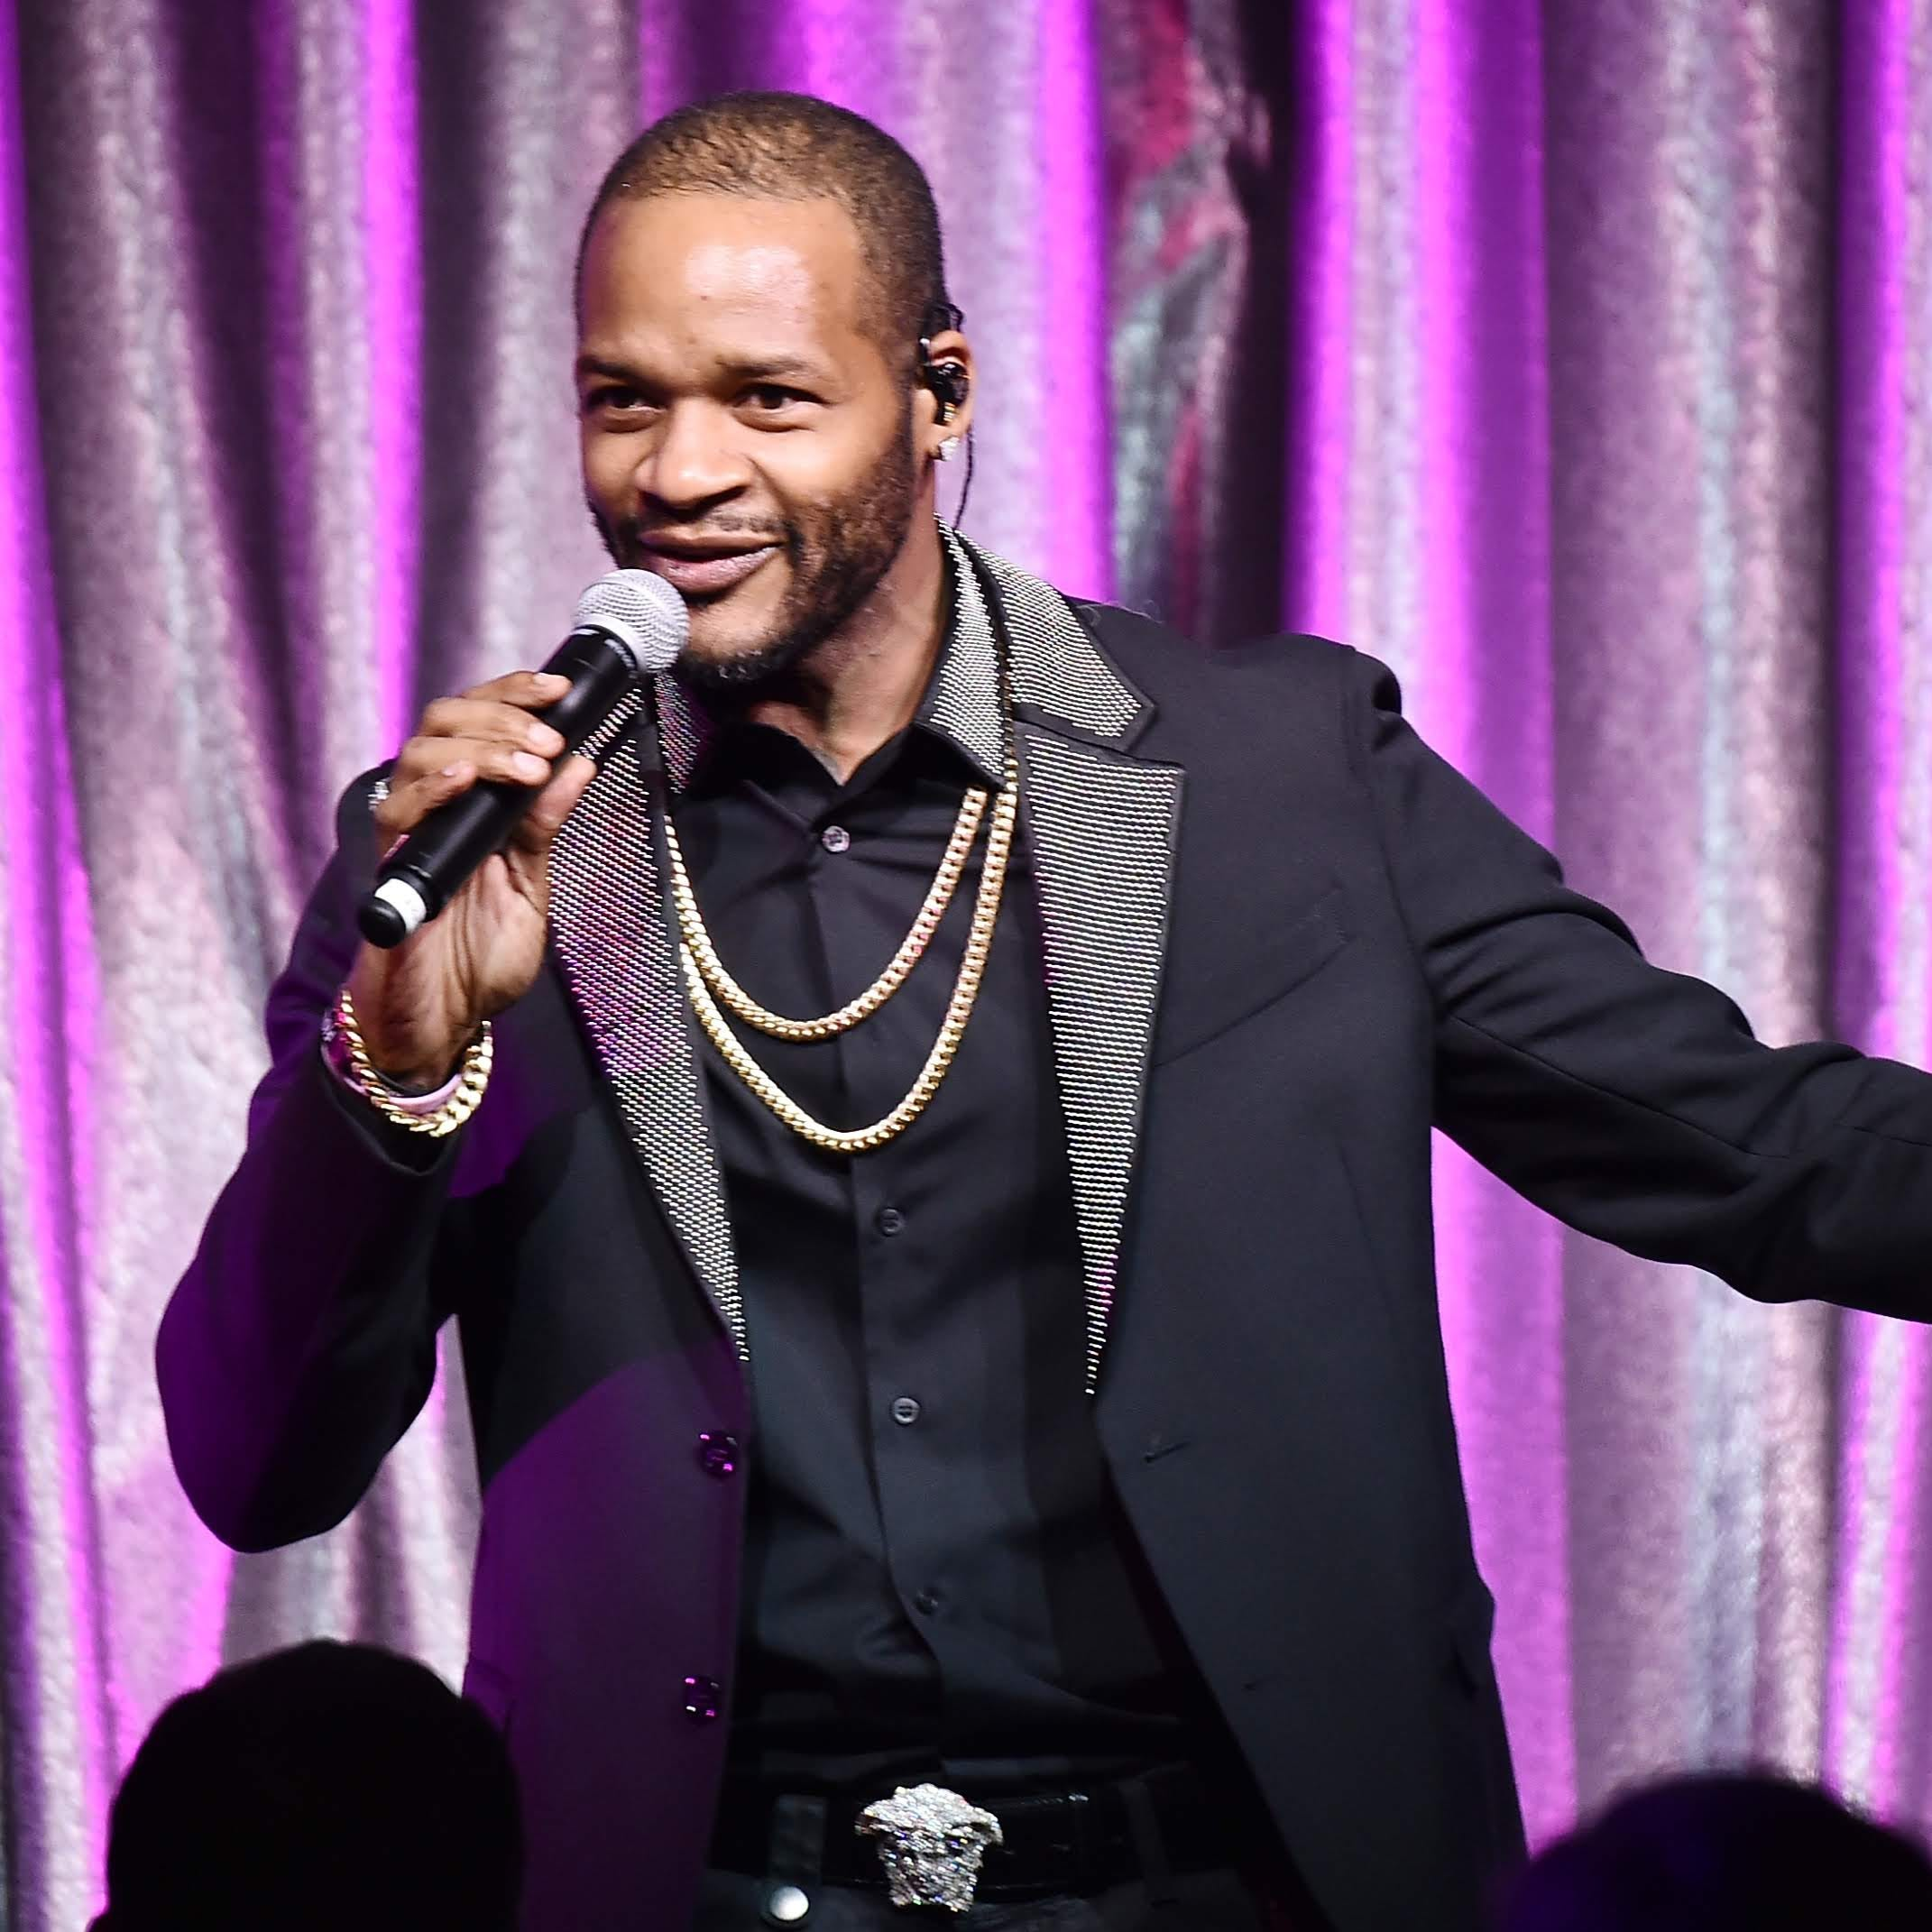 Jaheim will headline Indiana Black Expo Summer Celebration show